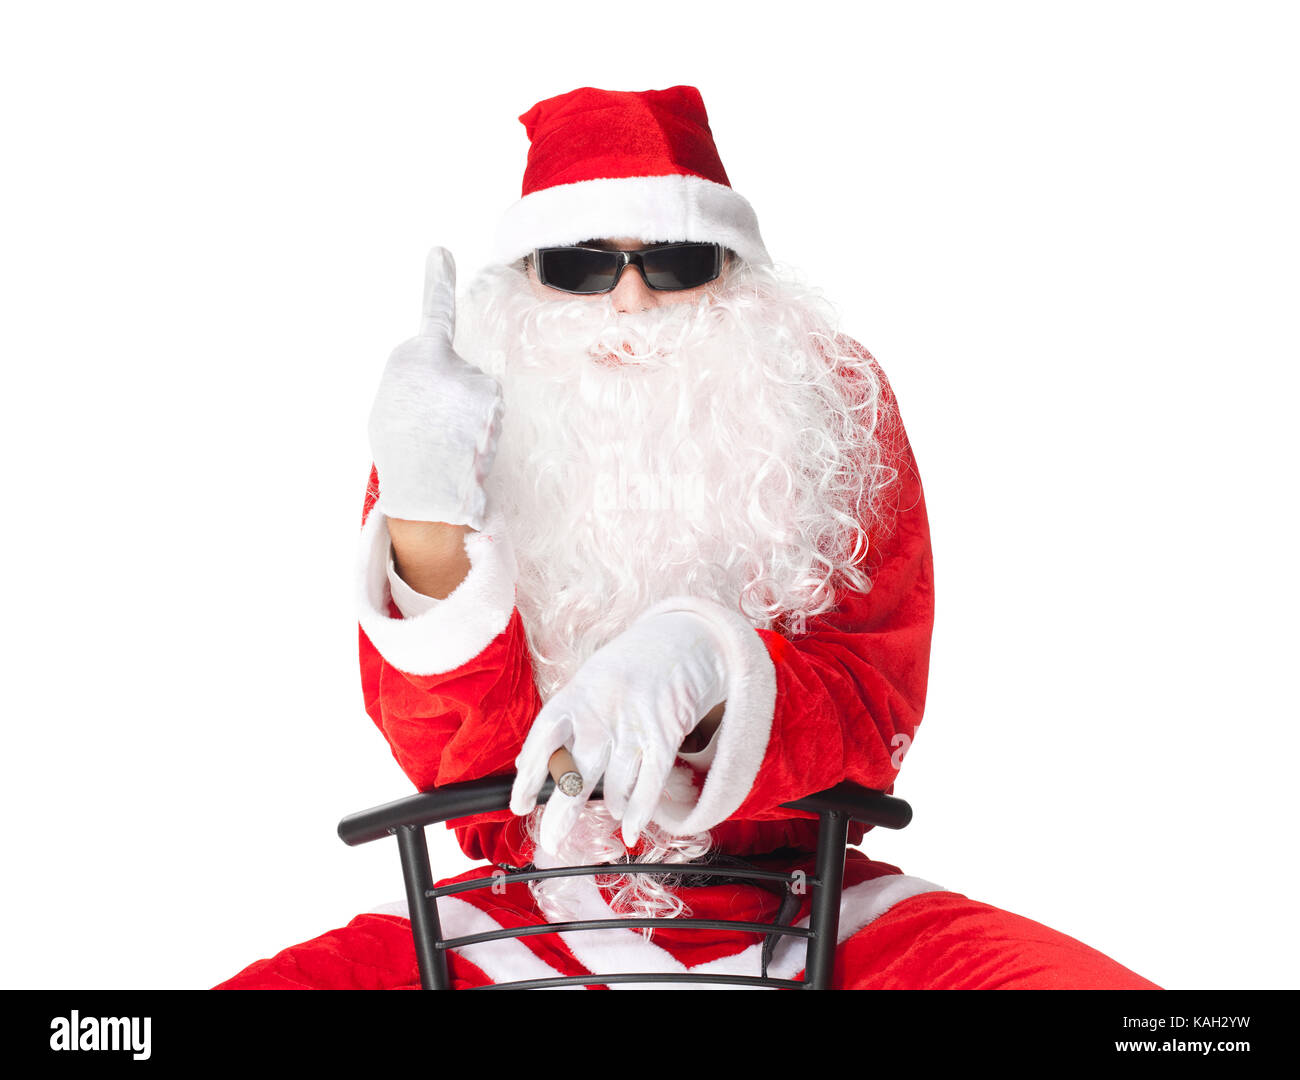 Santa Claus showing the middle finger sitting in a chair isolated on white background Stock Photo